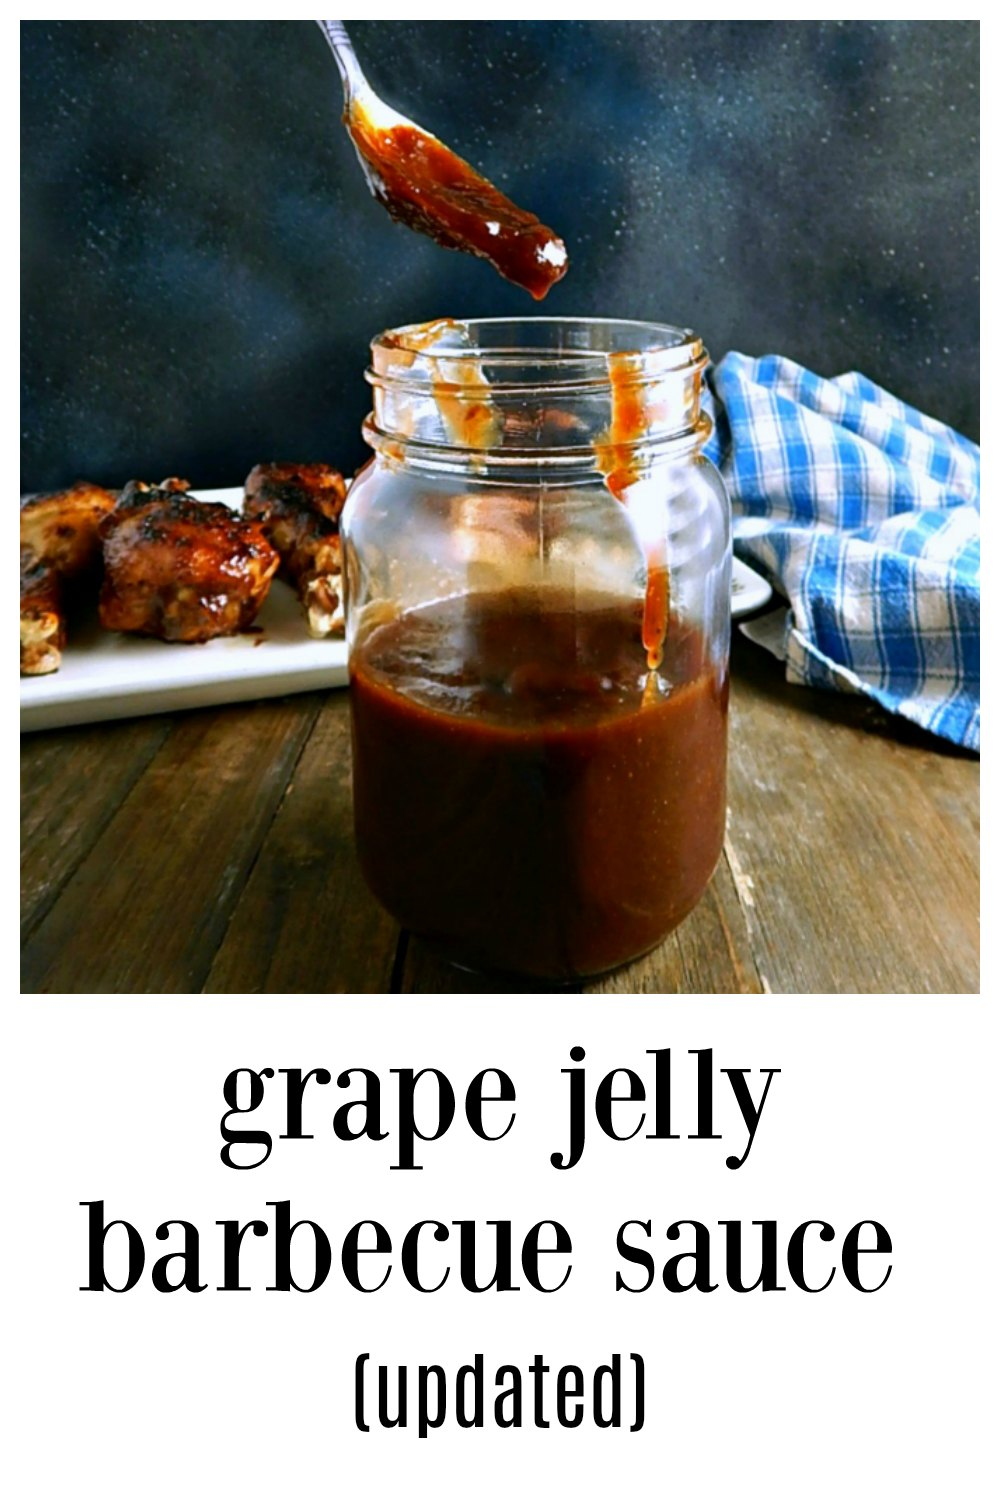 Grape Jelly Barbecue Sauce, Updated